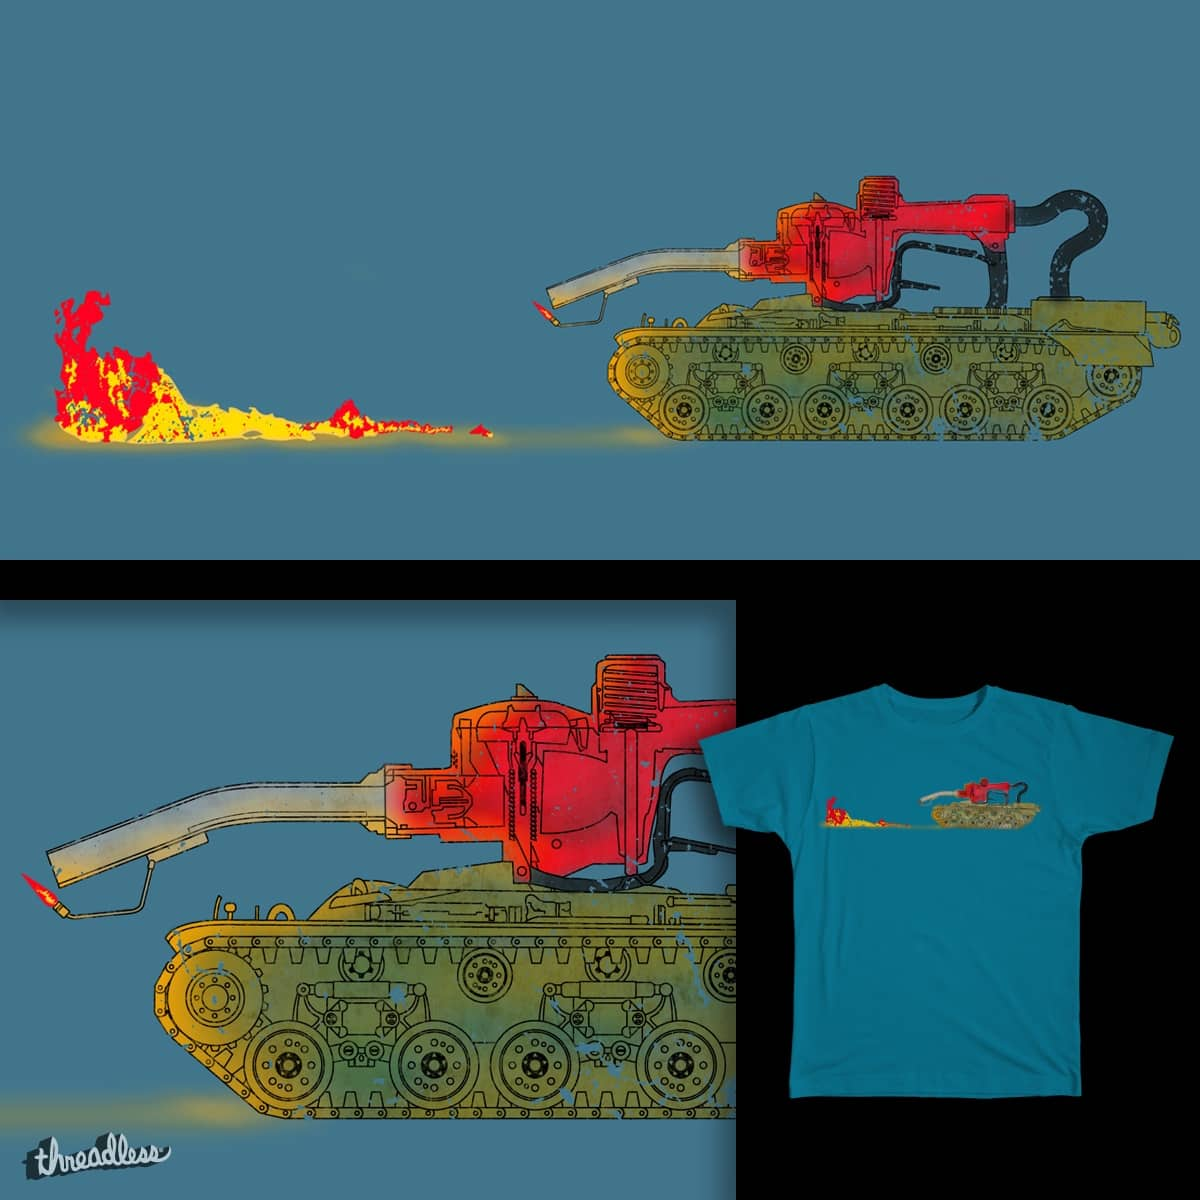 GAS TANK by daless25 on Threadless